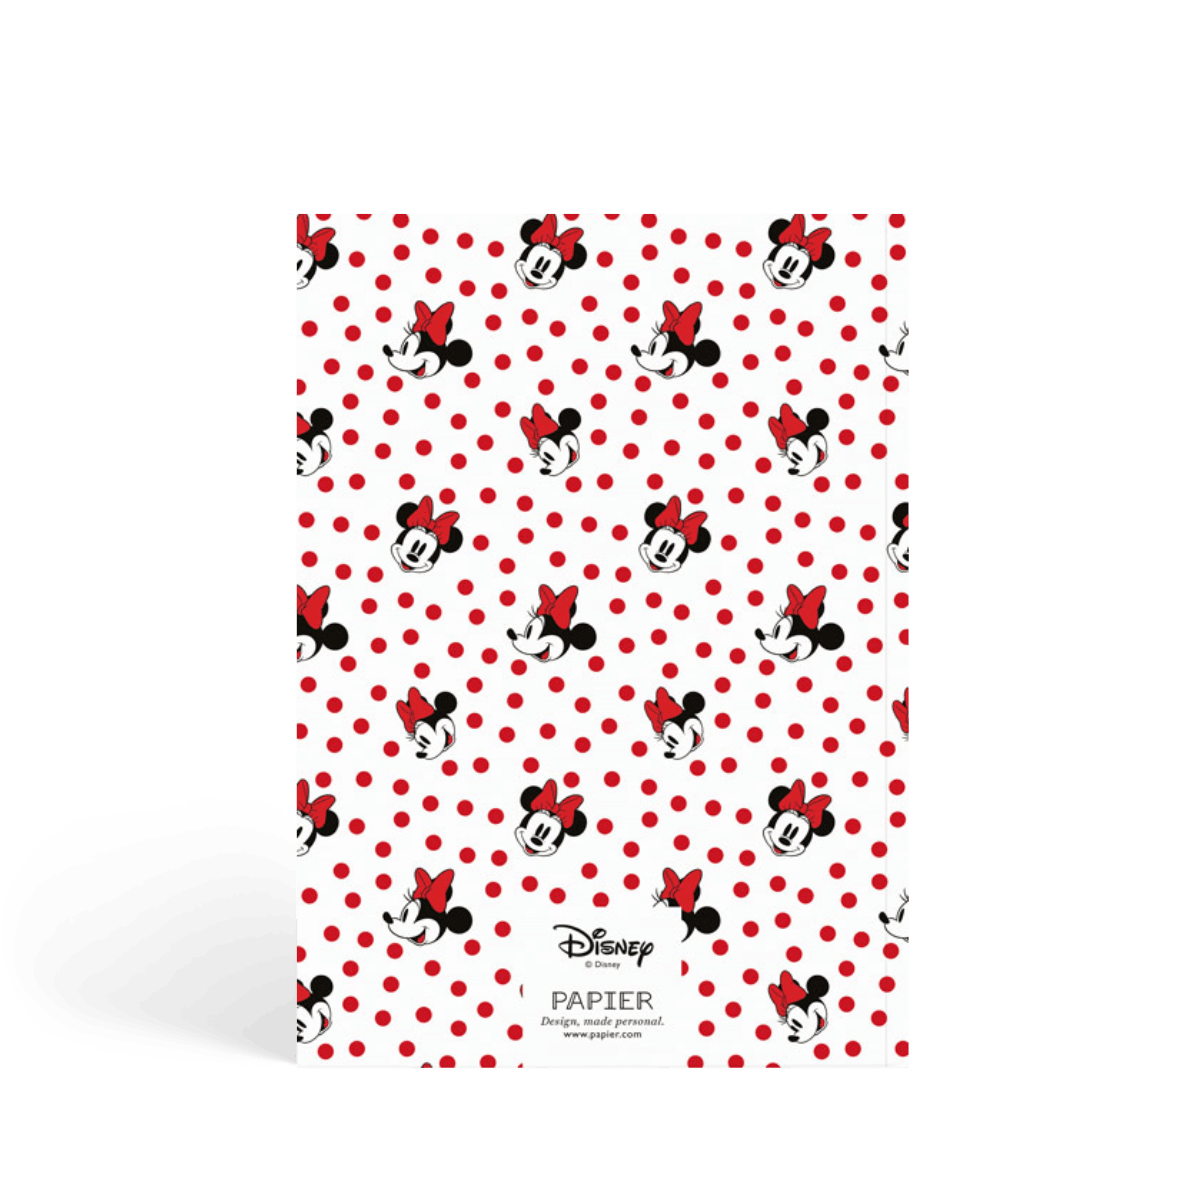 Https%3a%2f%2fwww.papier.com%2fproduct image%2f41964%2f5%2fminnie mouse 10696 rueckseite 1532359878.png?ixlib=rb 1.1